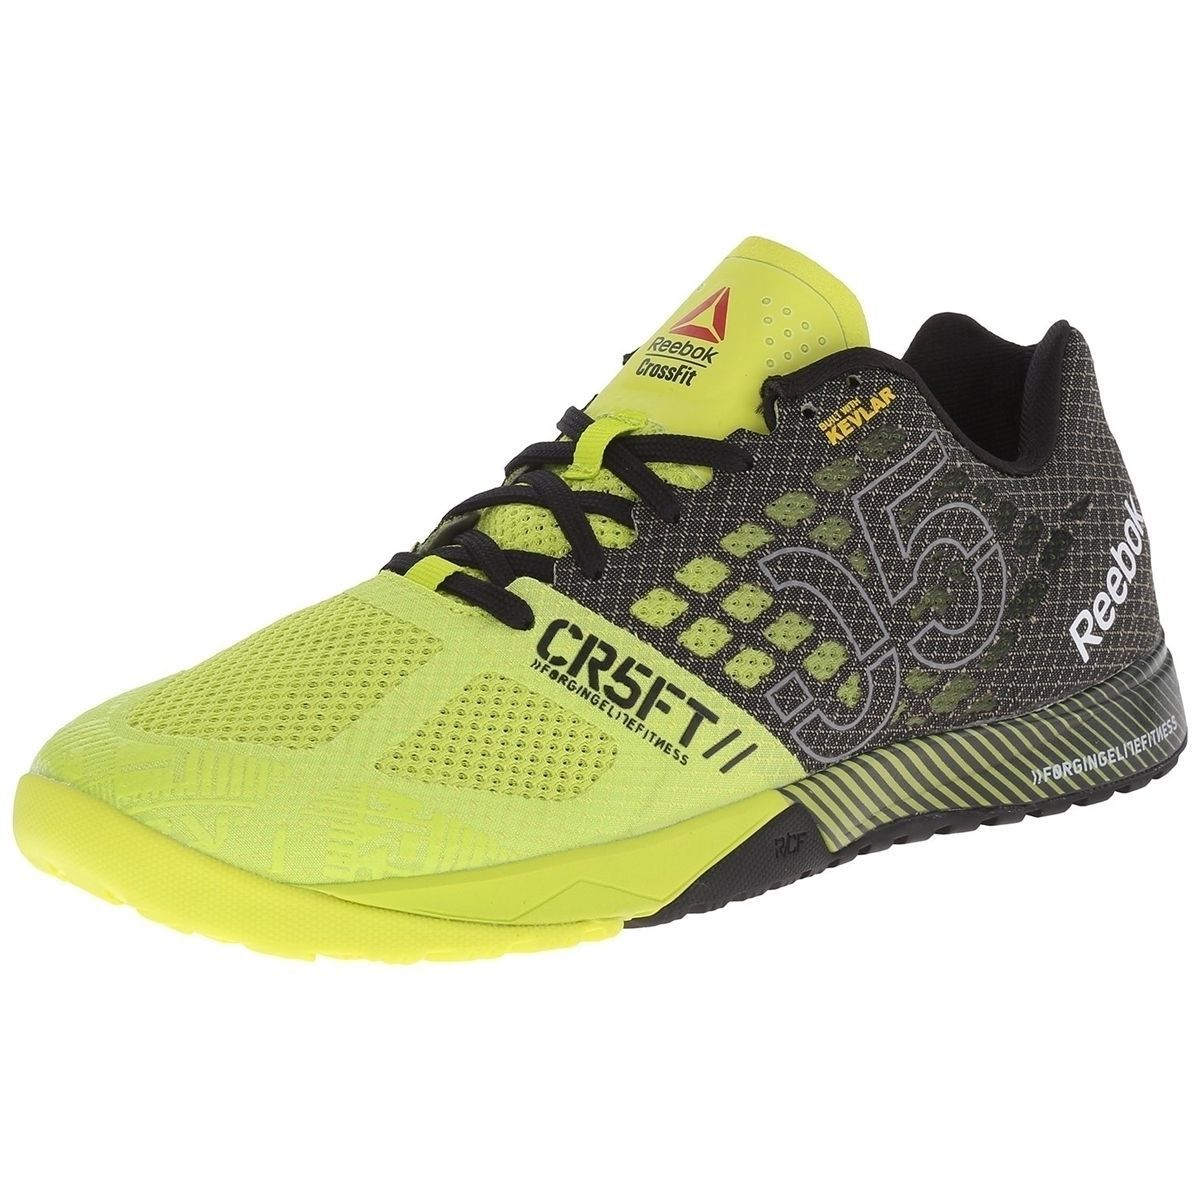 eab06dbe1e19fe Reebok Crossfit Nano 5 Womens Fitness Shoes Yellow Black Sneakers V65895